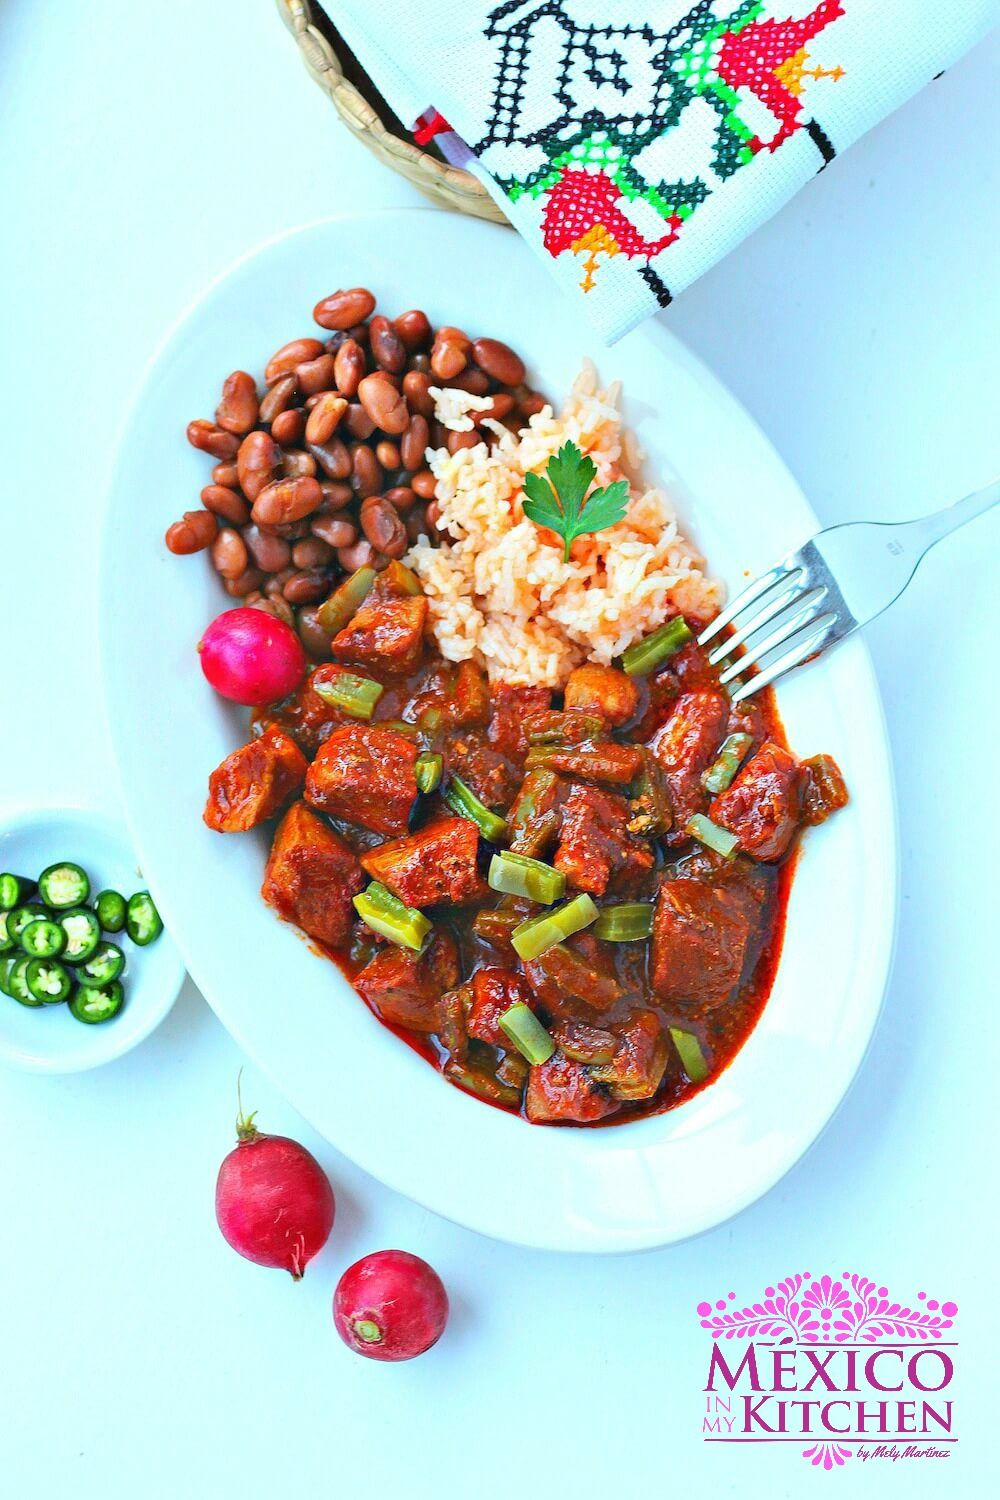 Chile colorado recipe authentic mexican recipe pork and nopales chile colorado recipe authentic mexican recipe pork and nopales few ingredients are needed forumfinder Images